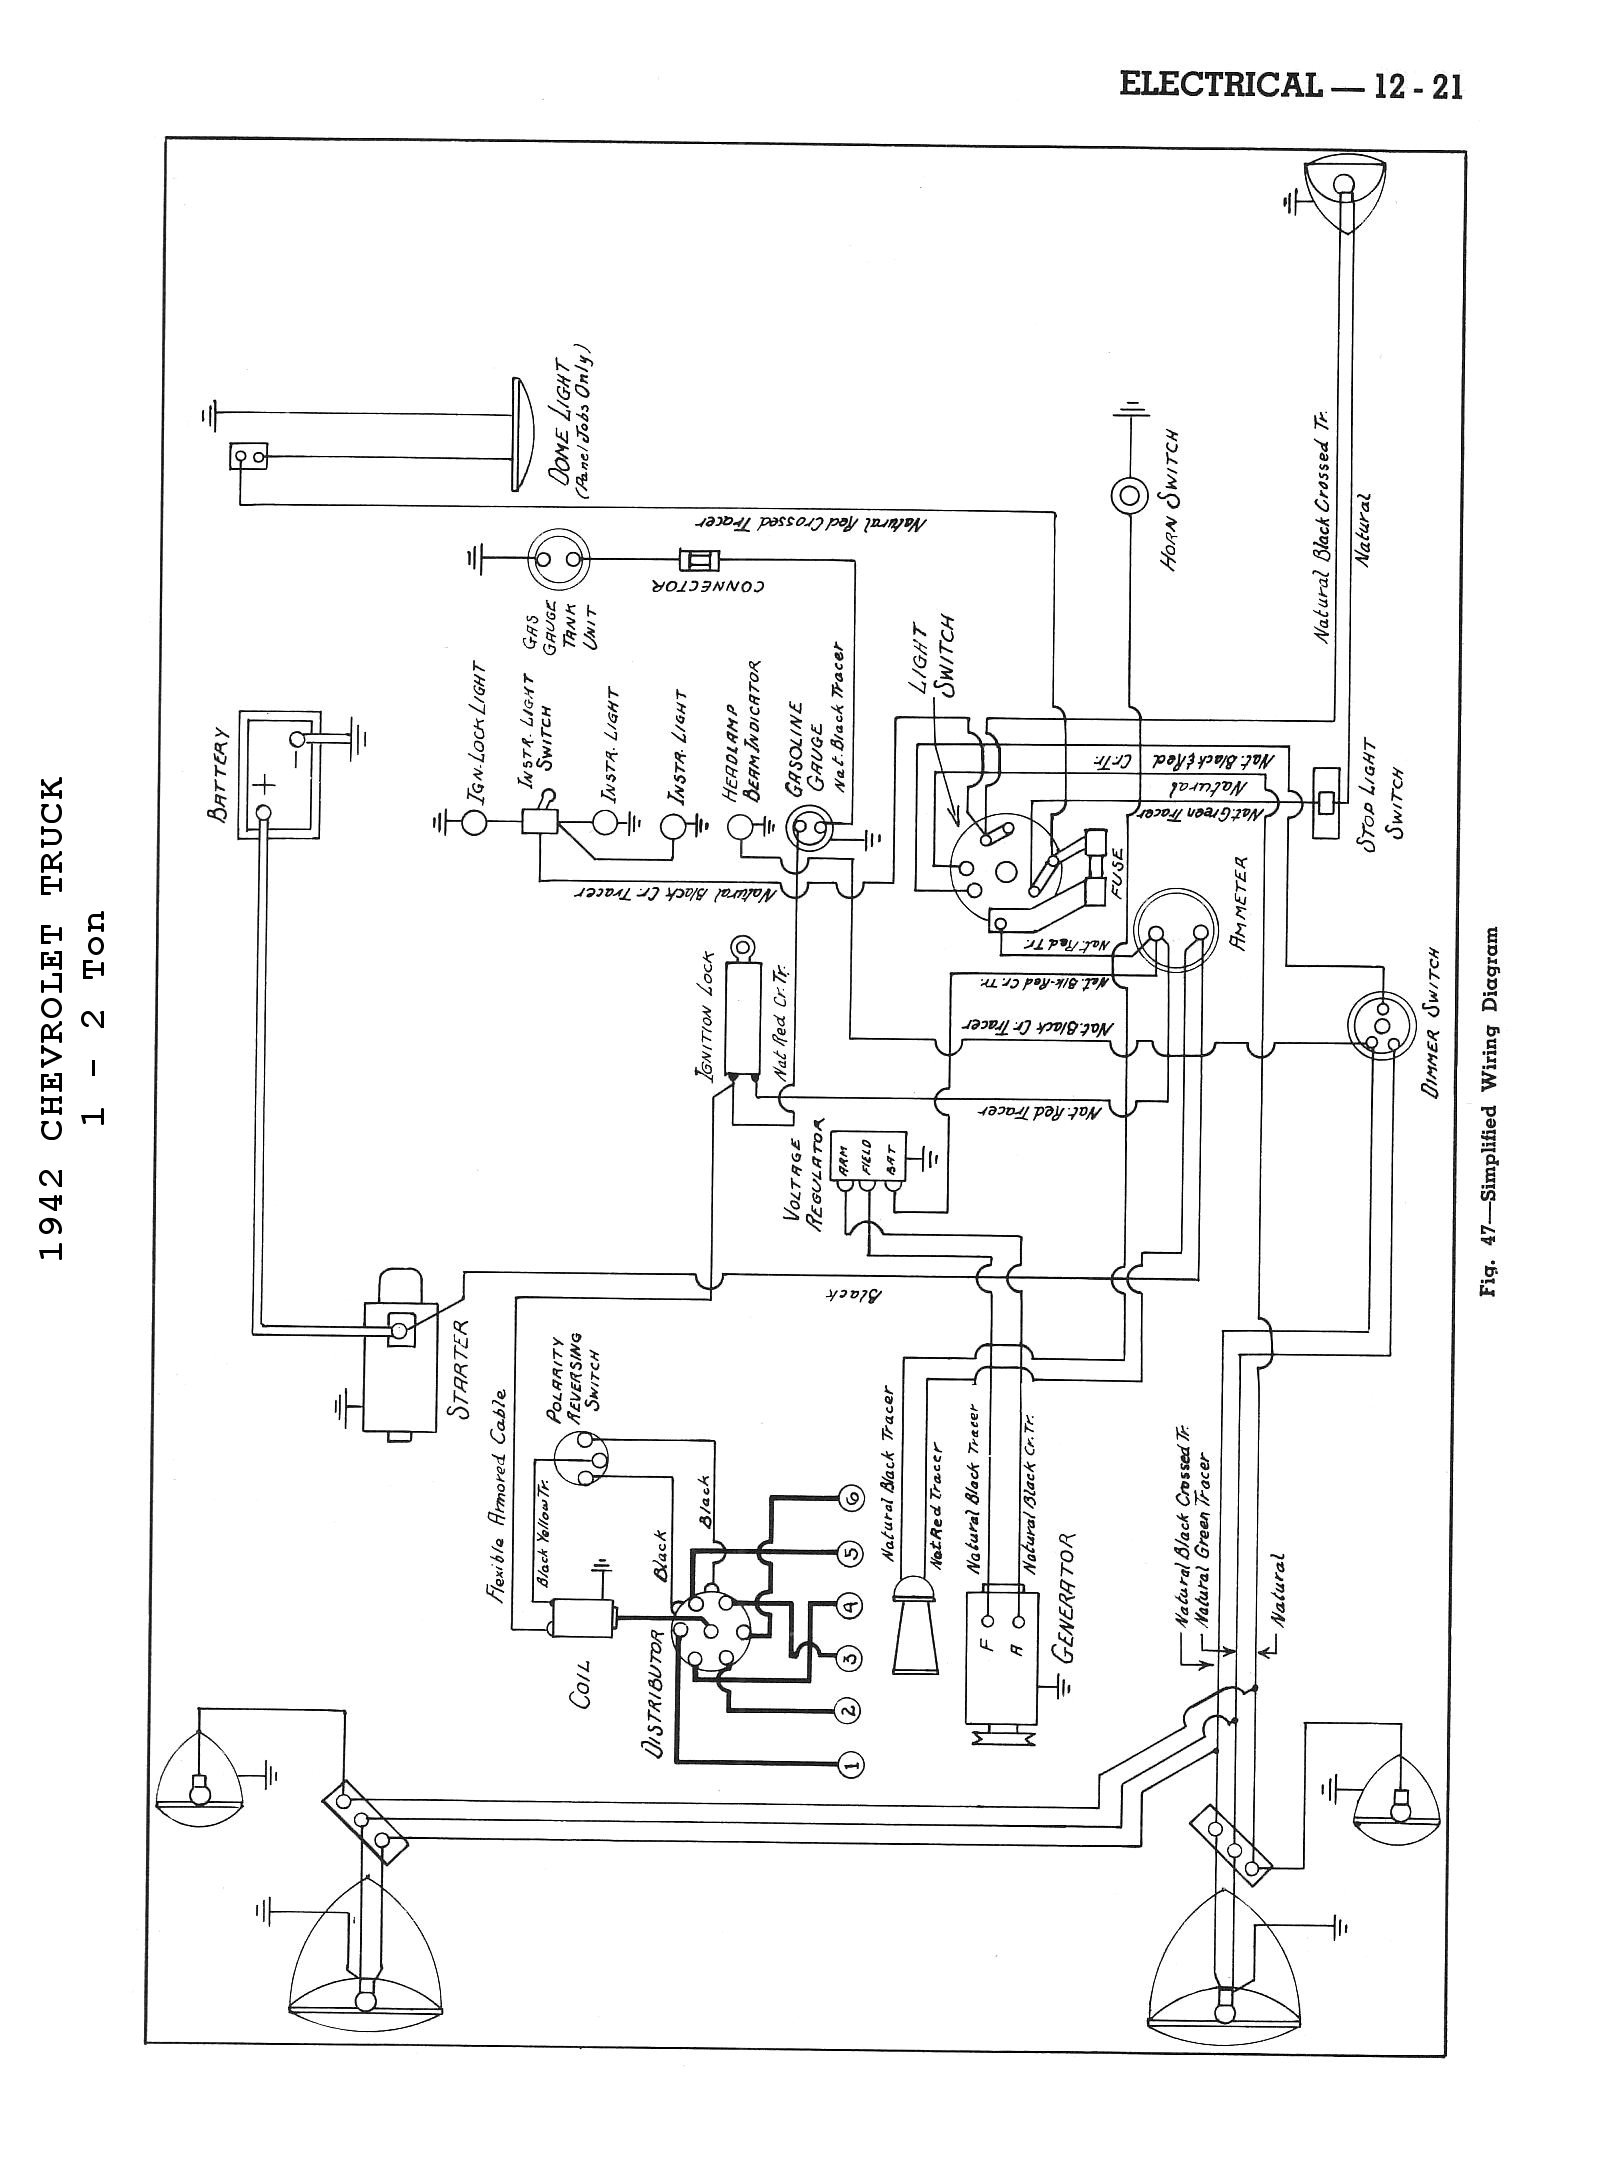 42cm4x2t1221 cm wiring diagram cm hoist wiring diagram \u2022 wiring diagrams j boston subsat 6 wiring diagram at n-0.co